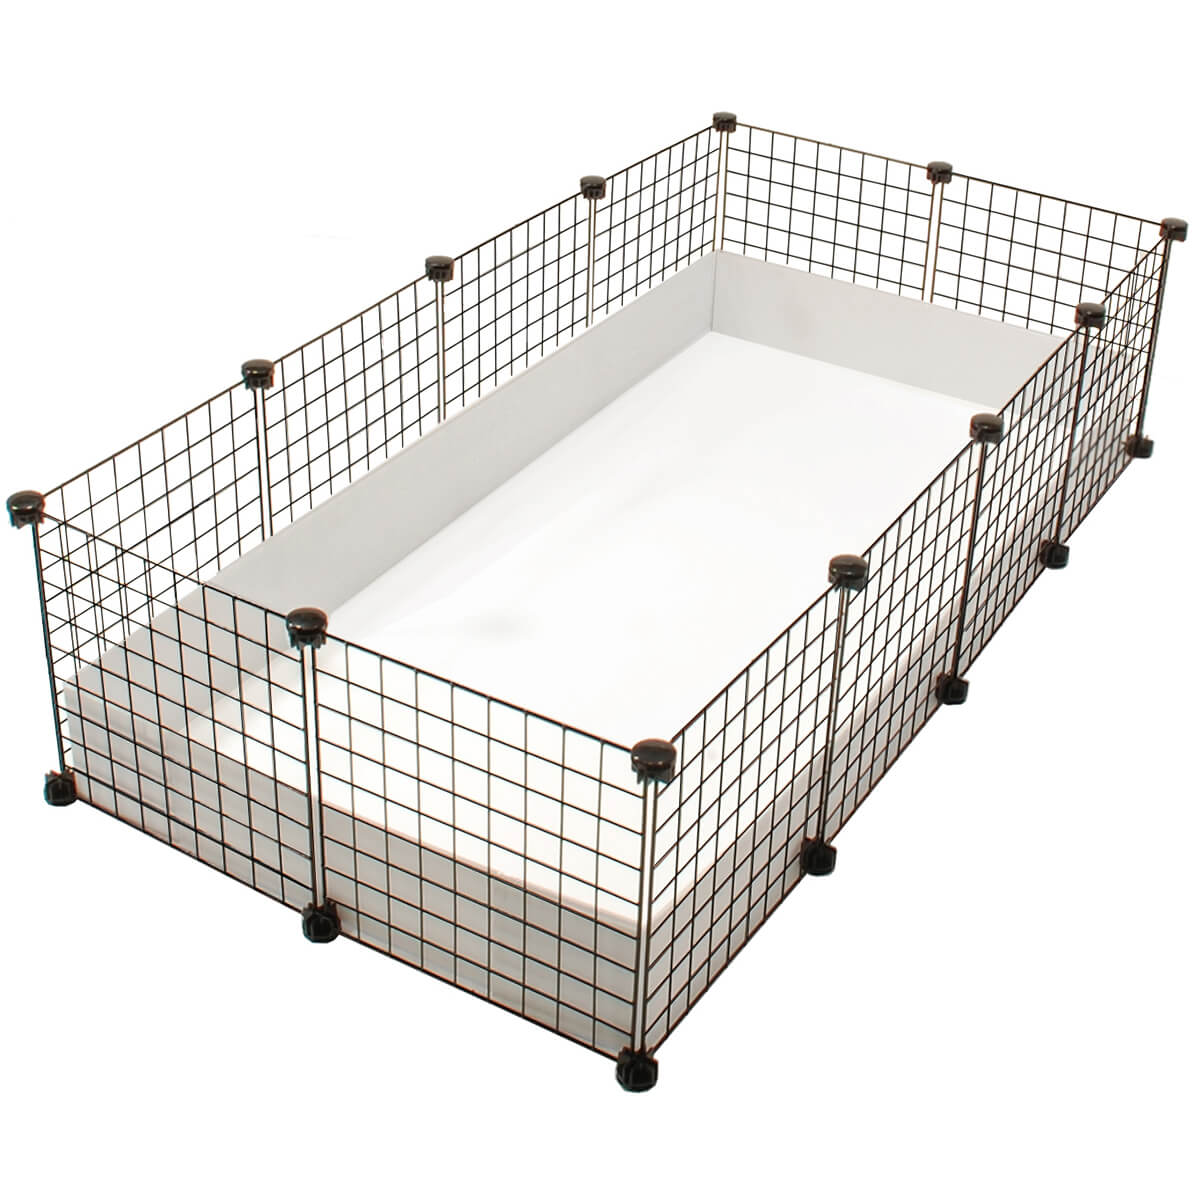 large 2x4 grids cage standard cages c c cages for